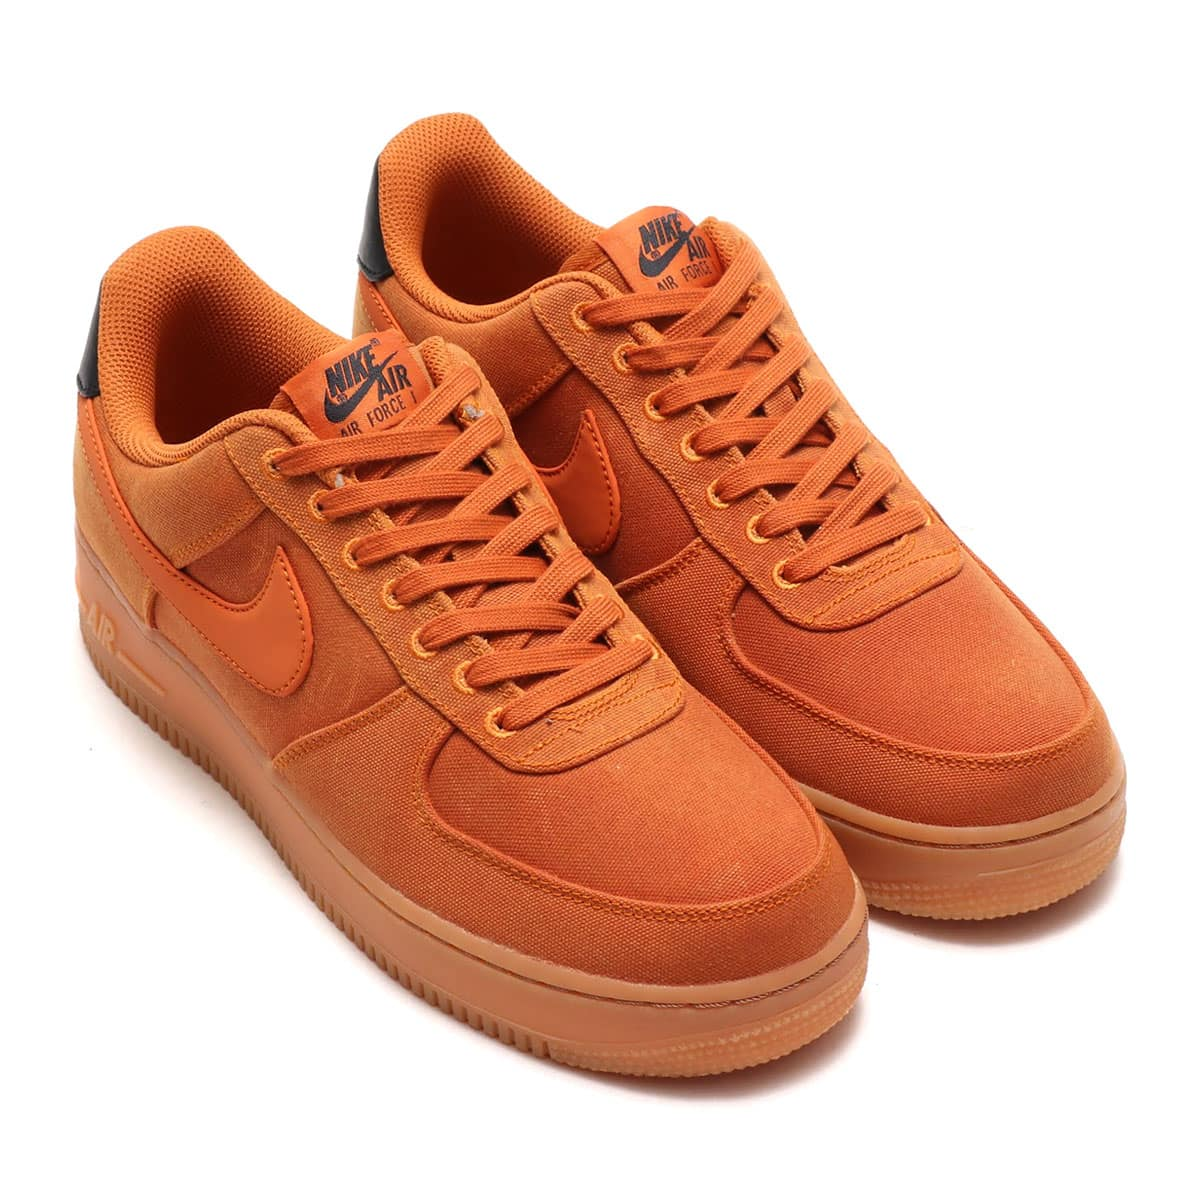 NIKE AIR FORCE 1 '07 LV8 STYLE  MONARCH/MONARCH-GUM MED BROWN-BLACK 18HO-I_photo_large